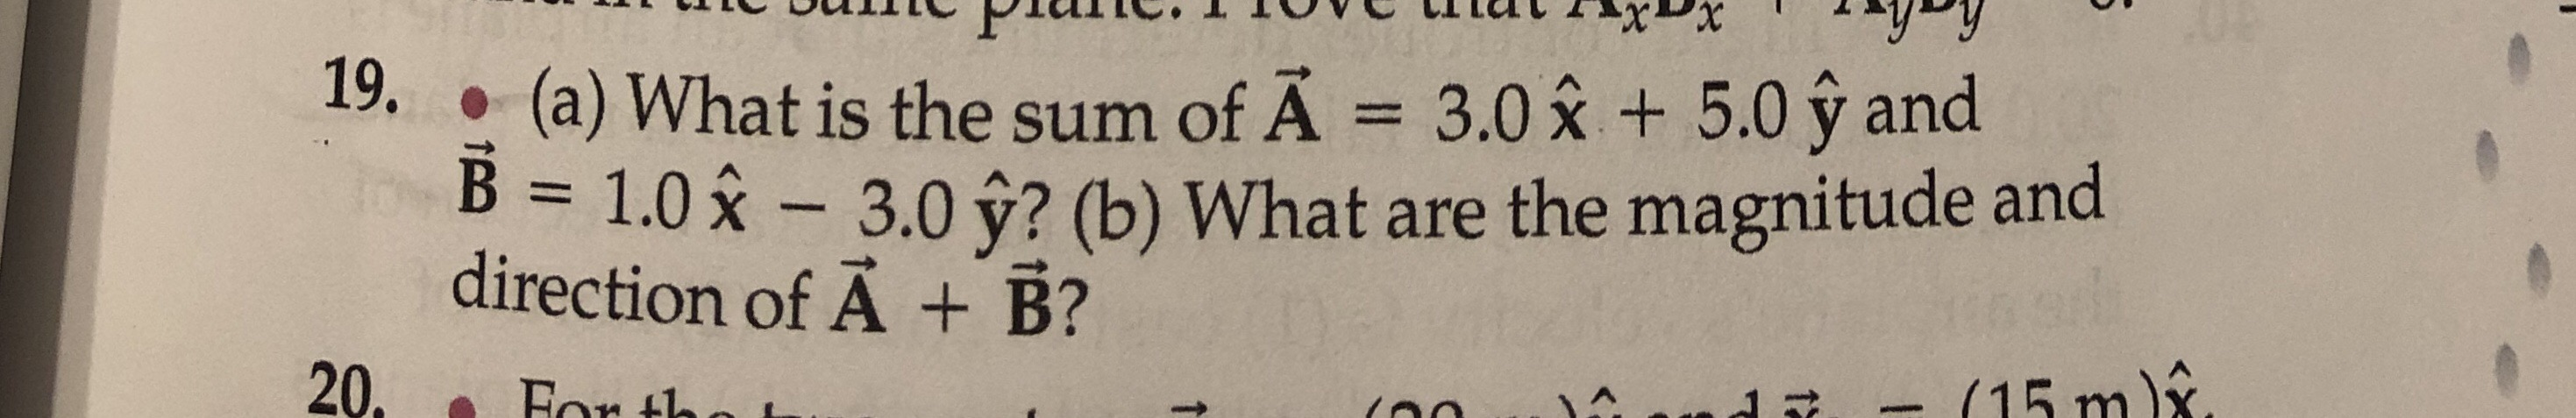 (a) What is the sum of A = 3.0 x +5.0 y and B 1.0x 3.0 y? (b) What are the magnitude and direction of A + B? 19. 15 m 20 Eor